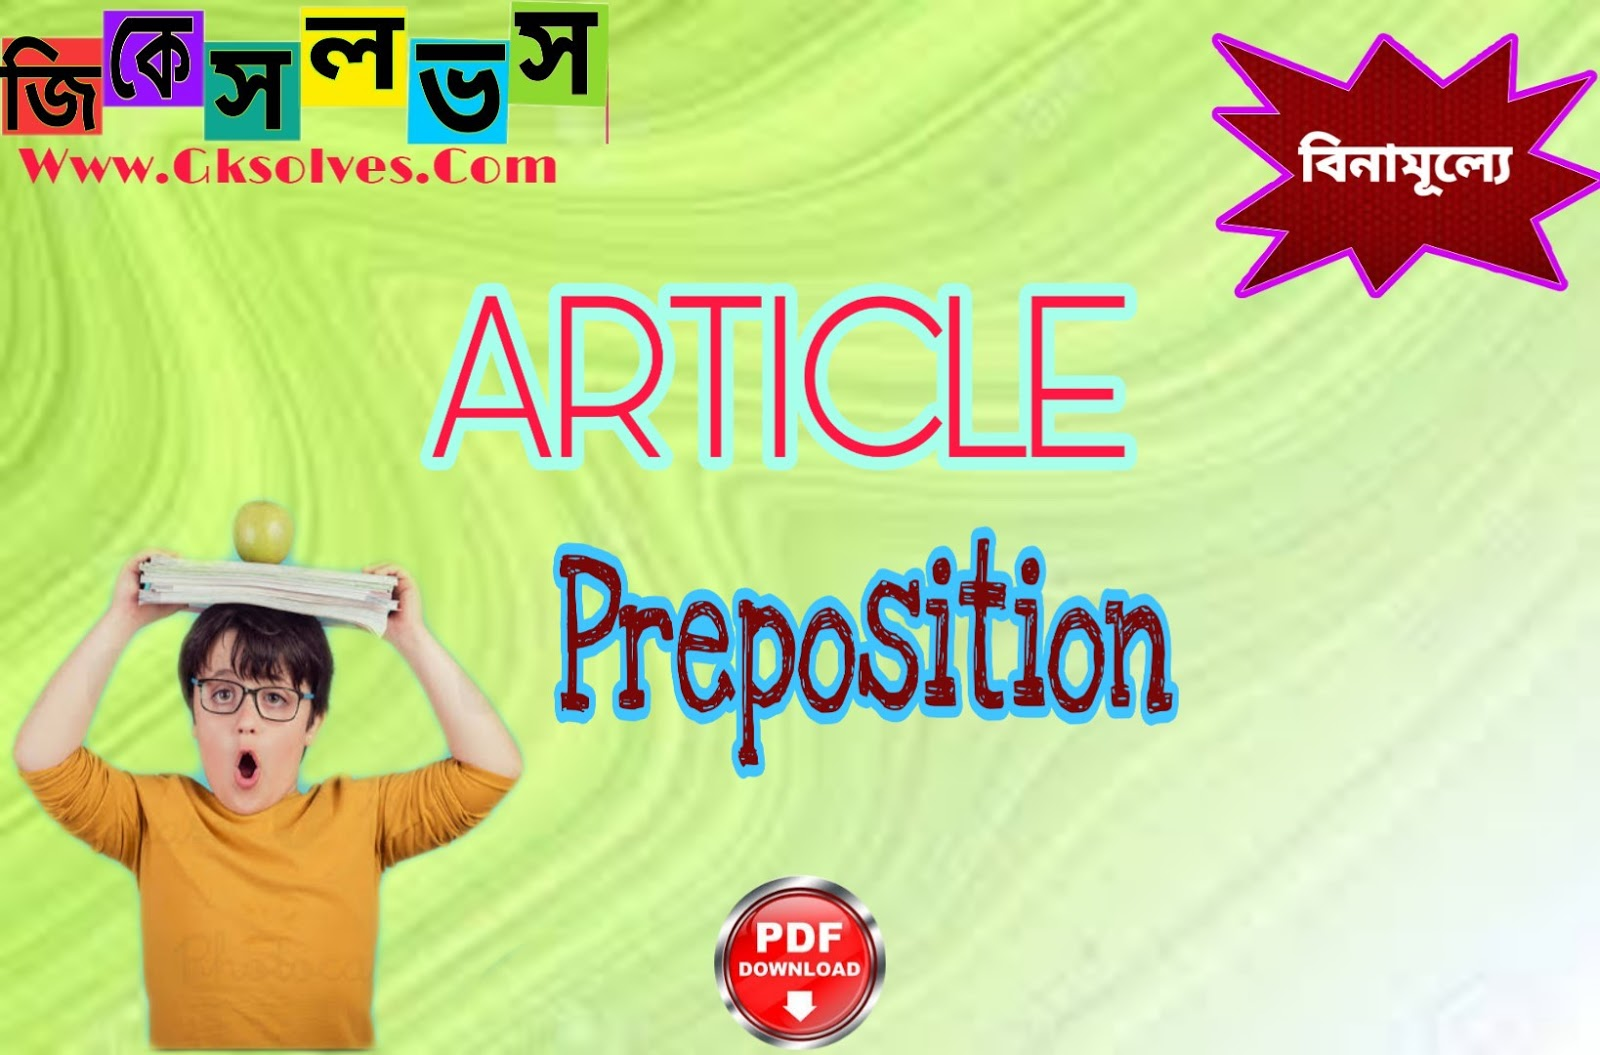 Download article preposition